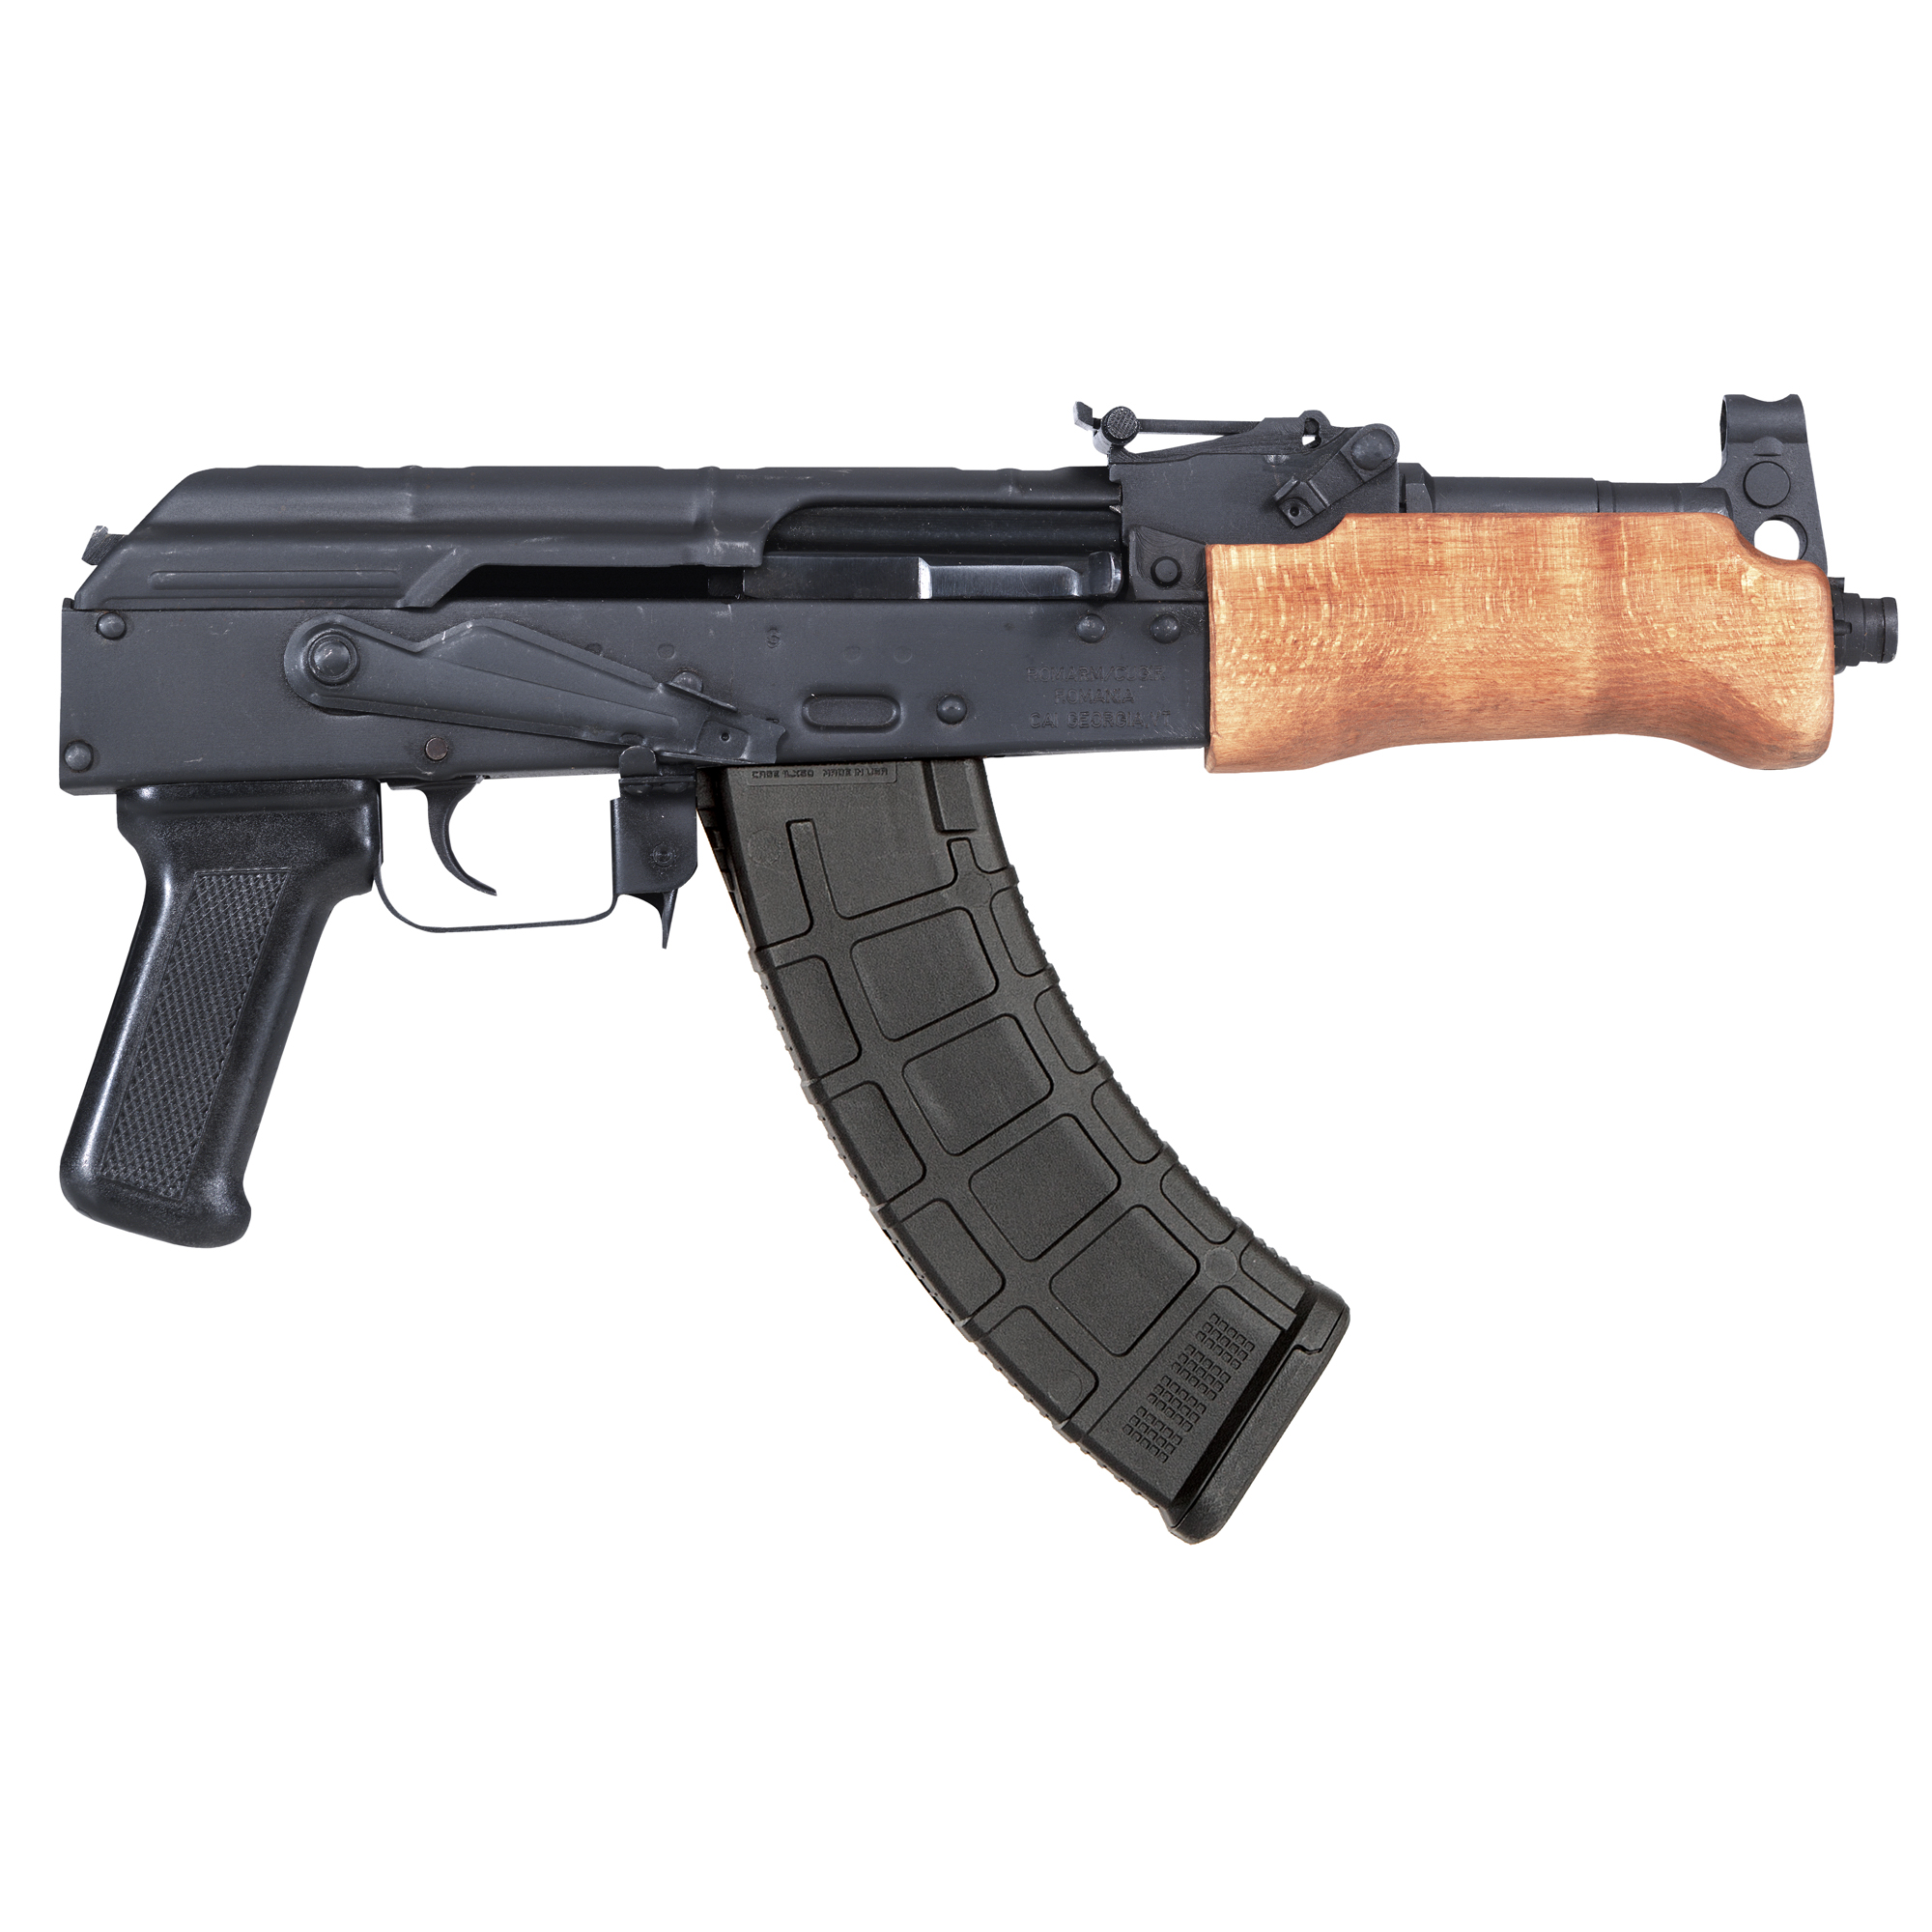 """The Century Arms Mini Draco features a stamped receiver"""" 14x1 left hand threaded barrel and it accepts all standard AK magazines."""